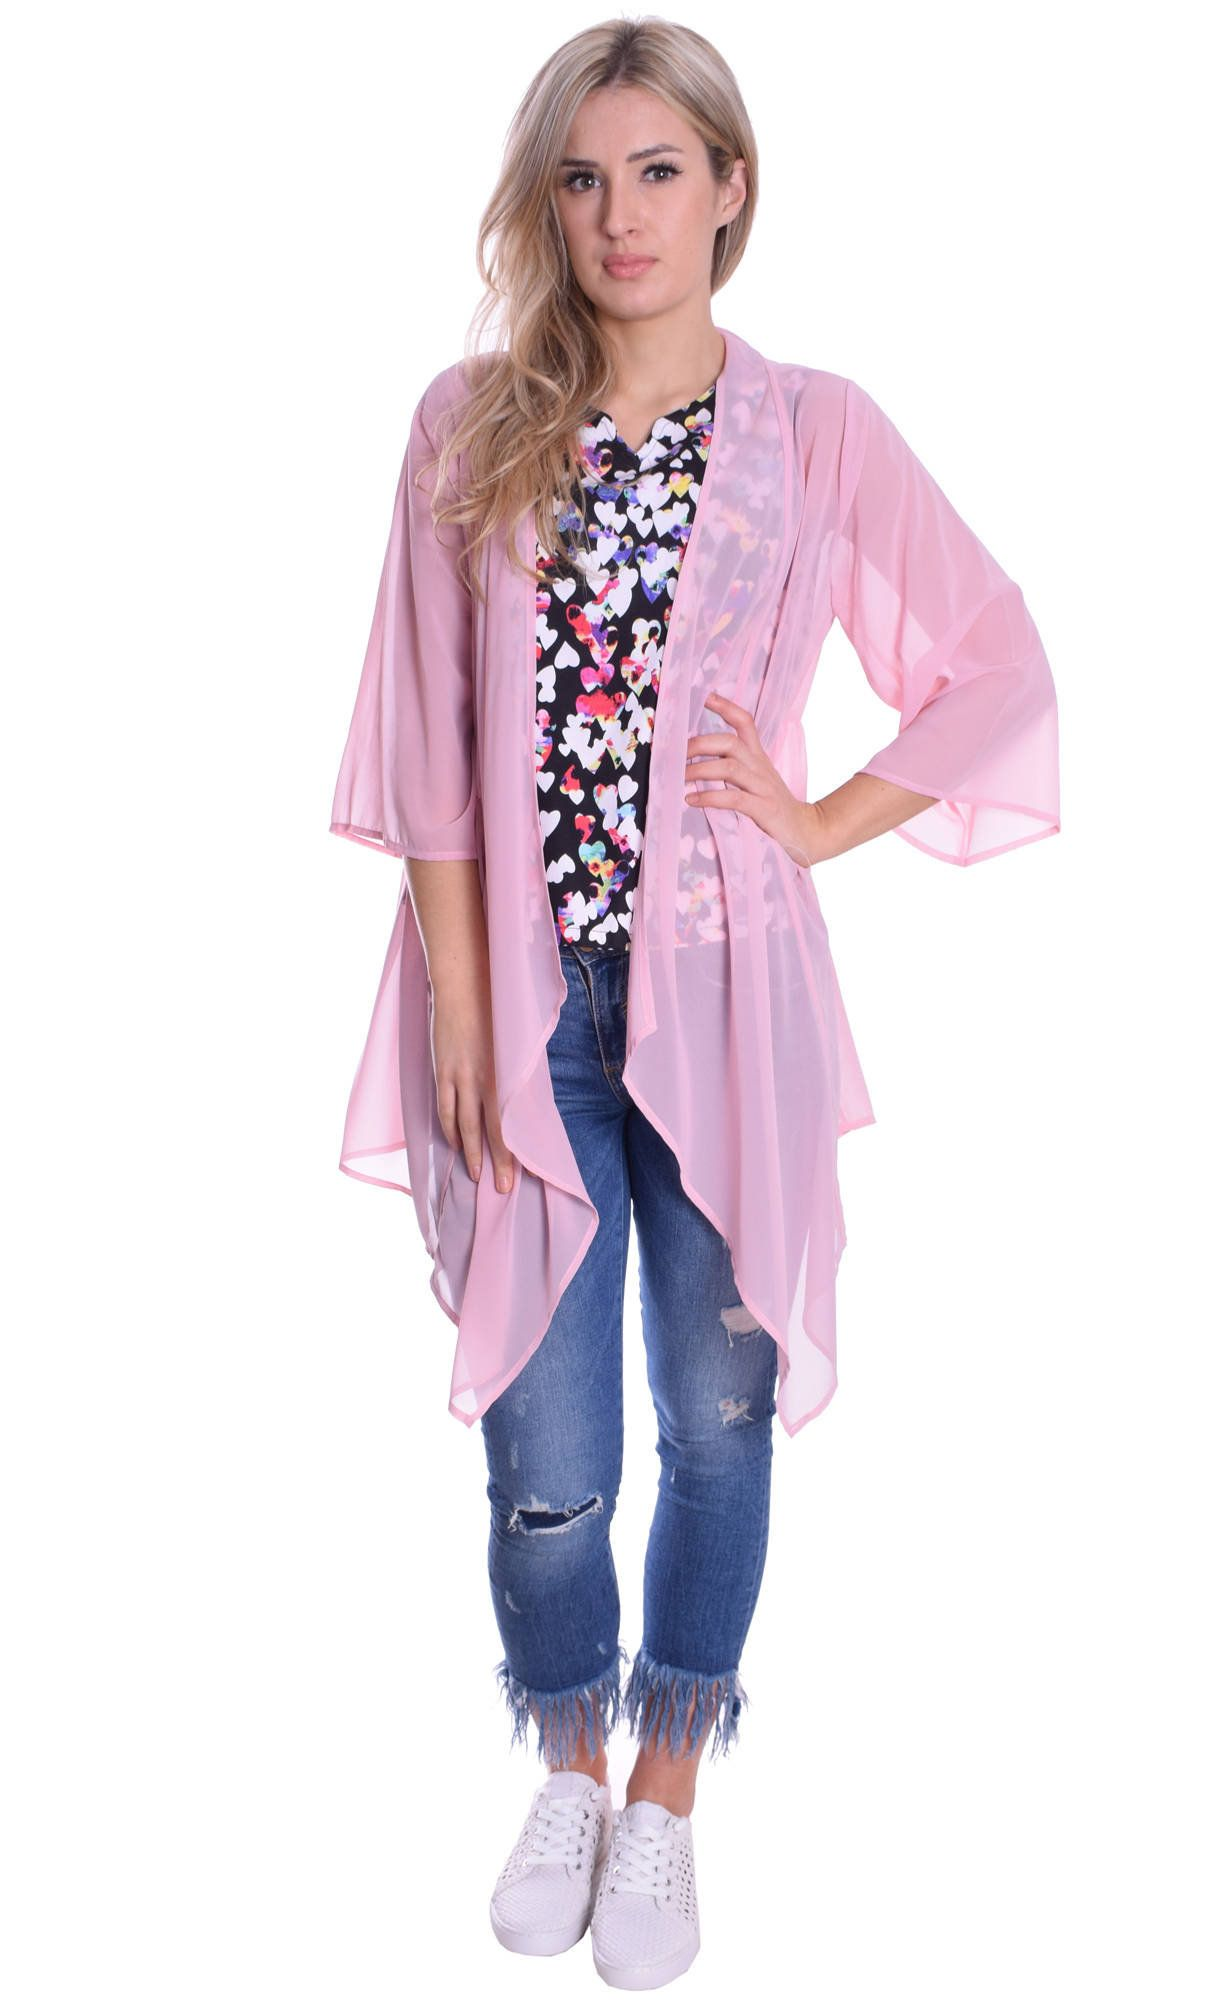 MontyQ Top Tunic 3//4 Sleeve Casual Soft Stretchy Comfy Loose Fit Floral